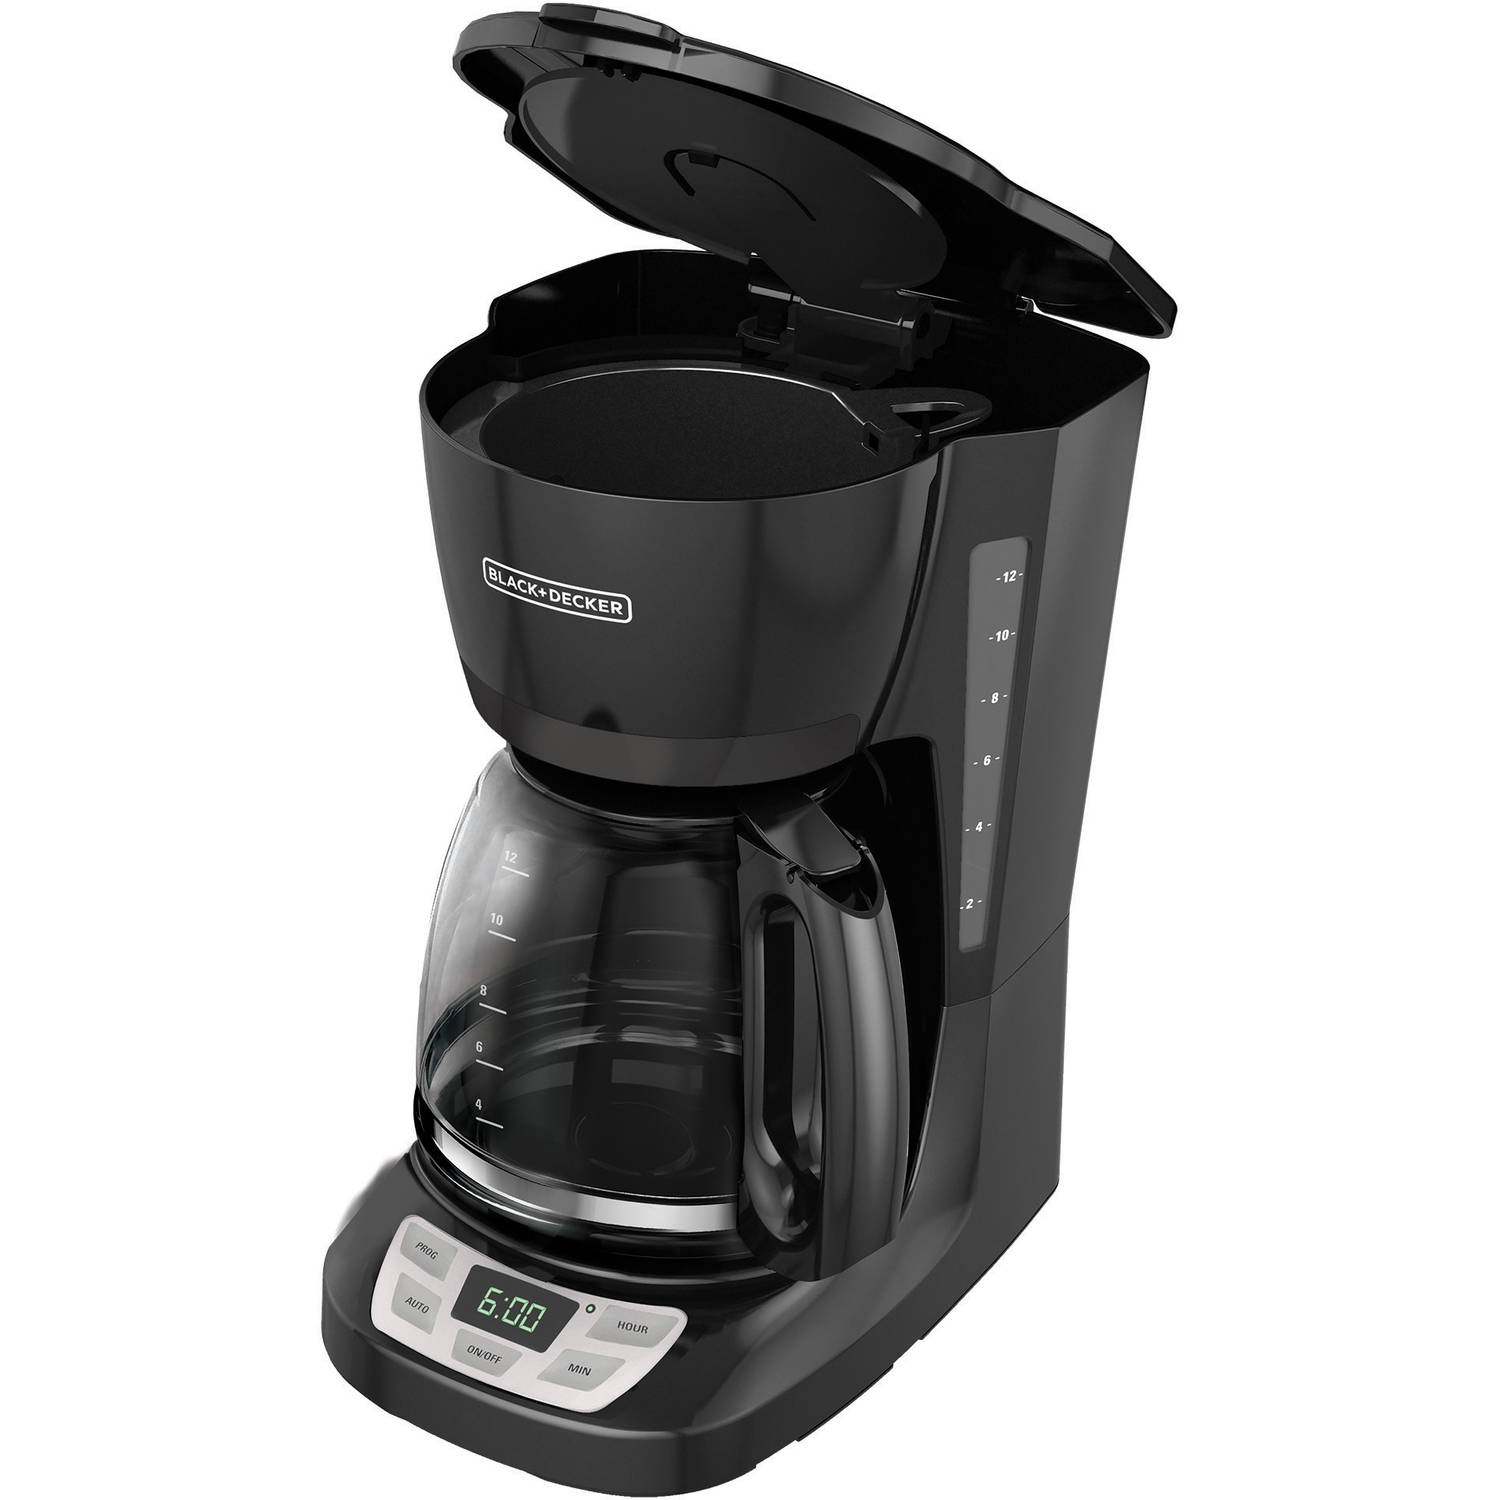 Black and decker coffee maker 12 cup programmable - Black Decker 12 Cup Programmable Coffee Maker Cm0960bfhp Walmart Com